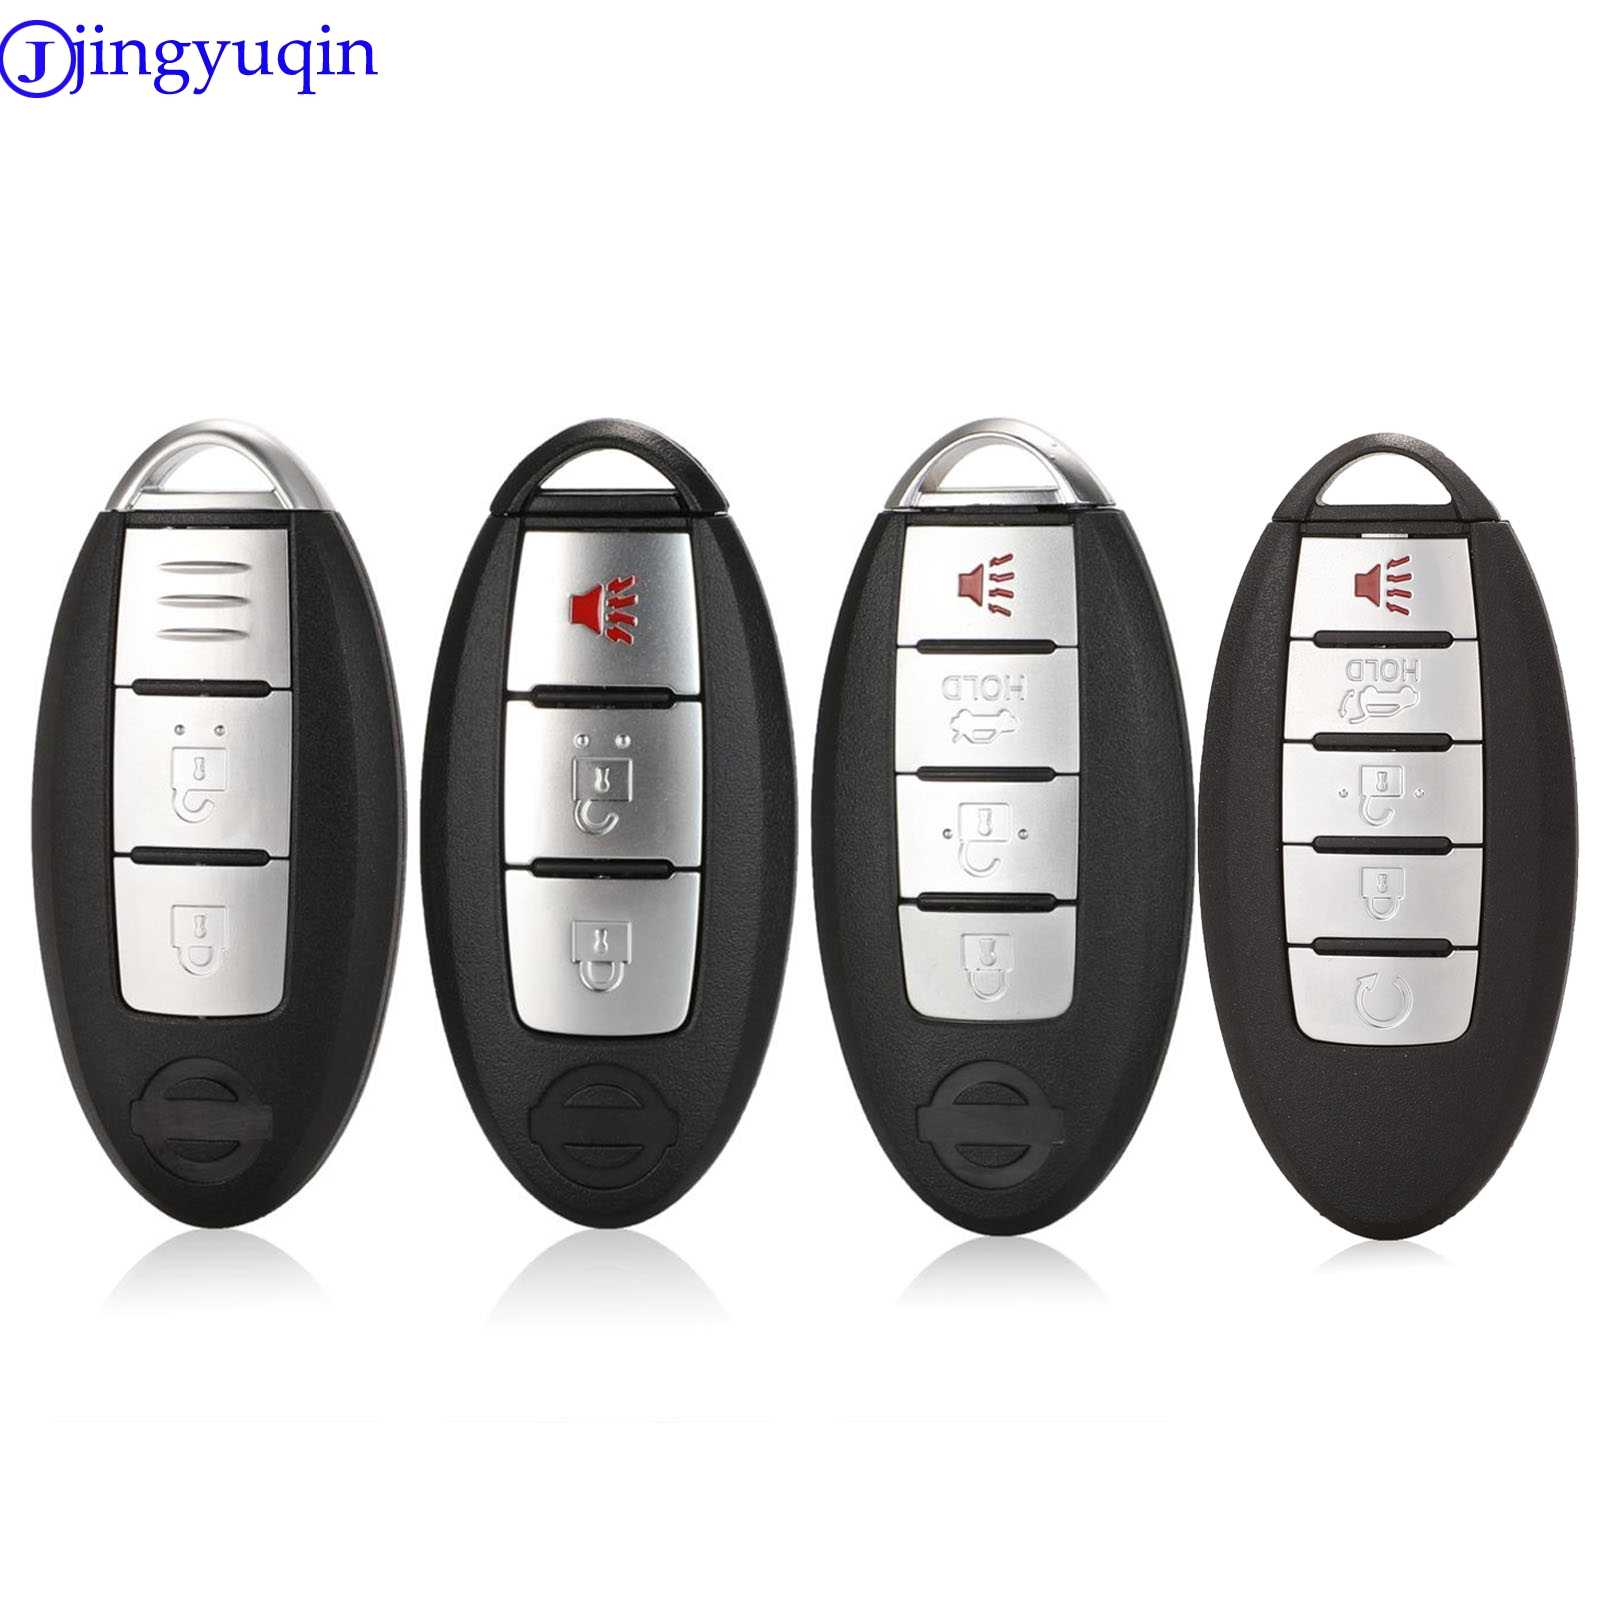 3 Buttons For Nissan Altima Maxima Sentra Smart Remote Key Shell Case Fob